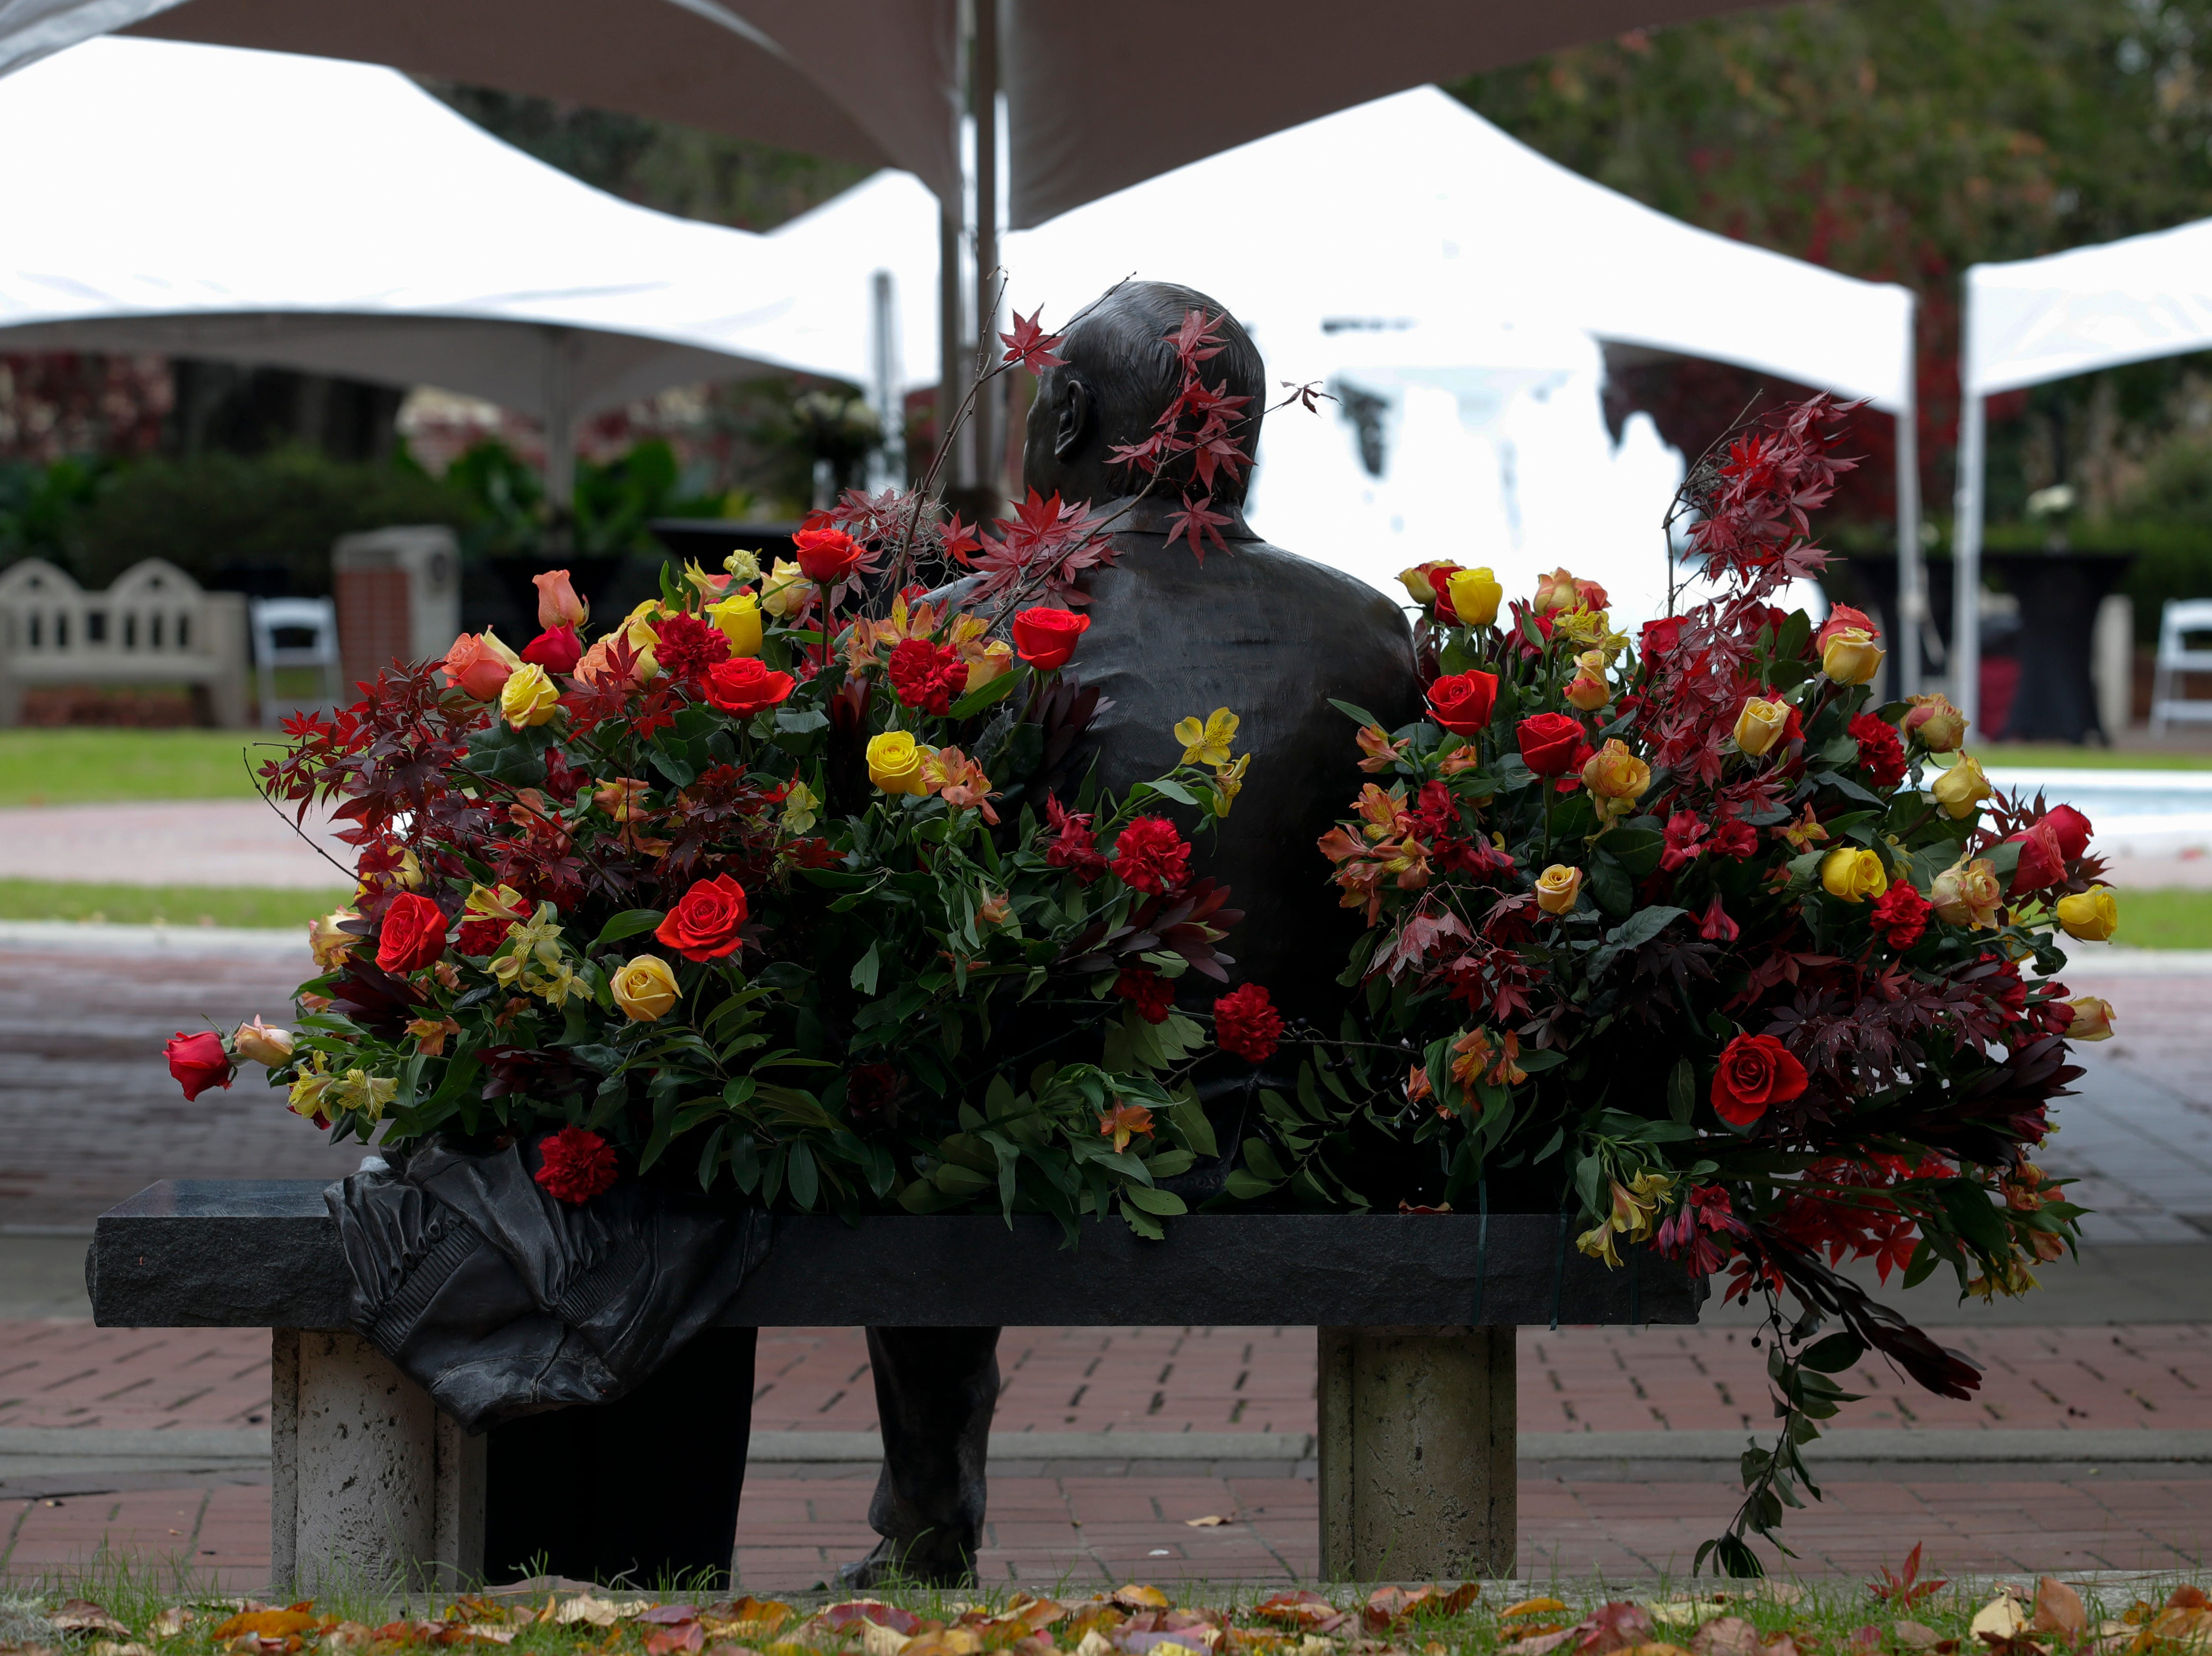 The statue of Florida State University President Emeritus T.K. Wetherell is covered in flowers just before his funeral service held at Ruby Diamond Concert Hall Friday, Dec. 21, 2018.